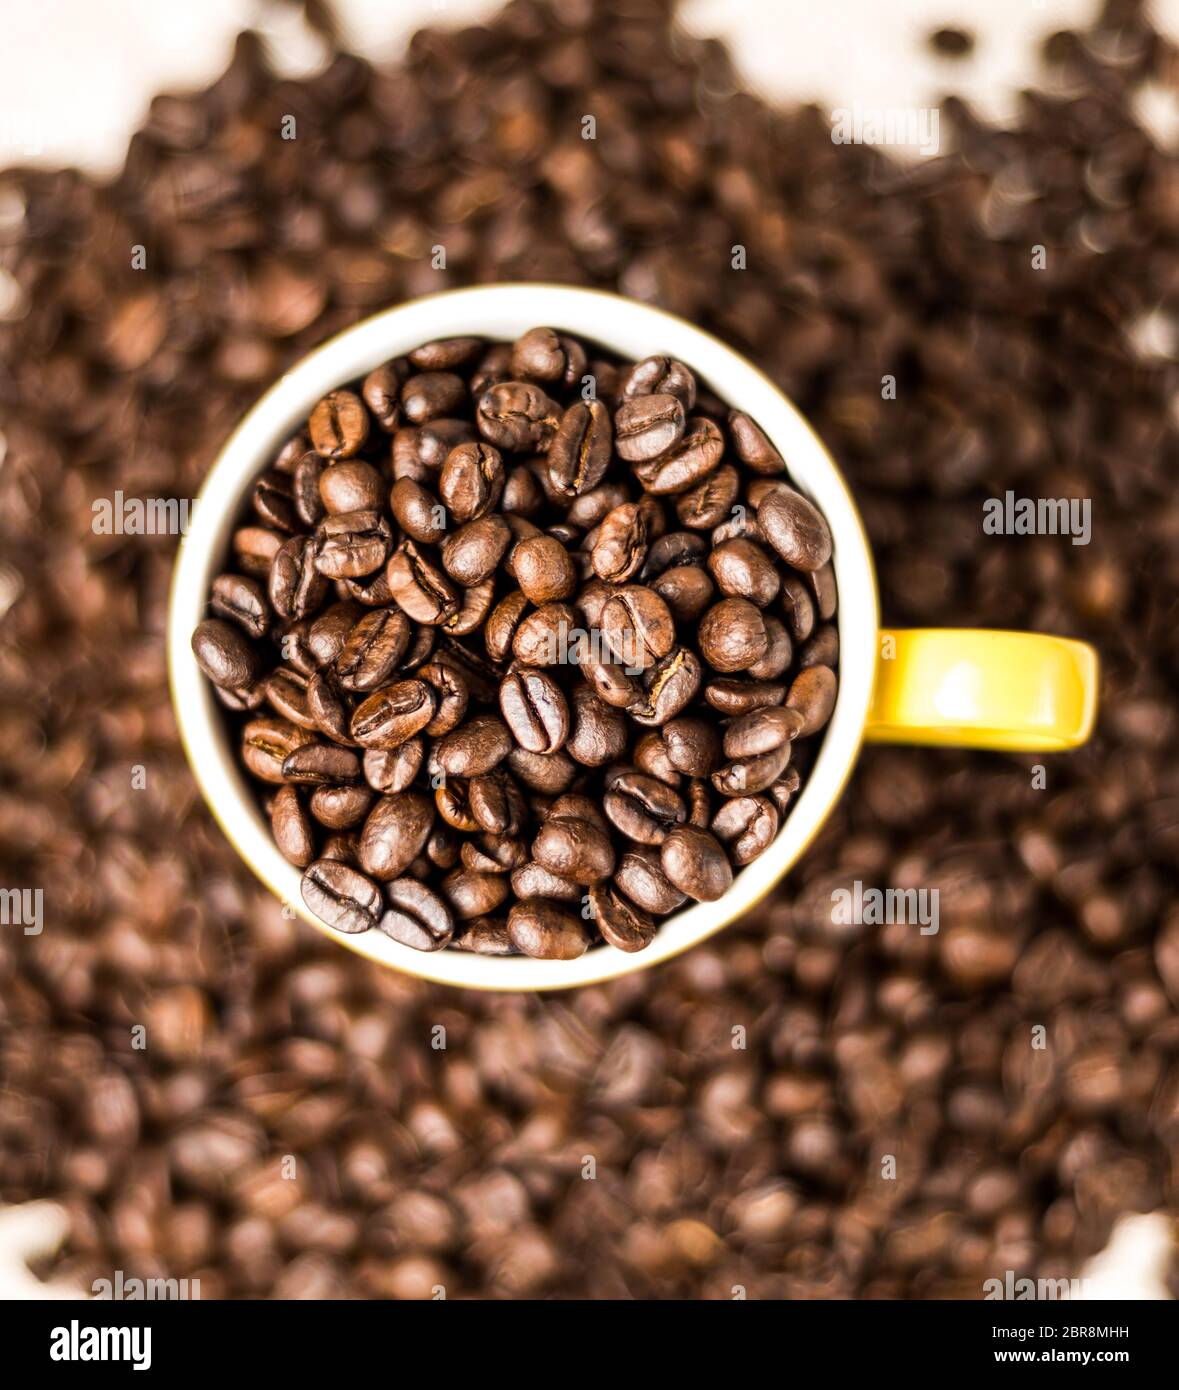 Brown roasted coffee beans, seed on dark background. Espresso dark, aroma, black caffeine drink. Closeup isolated energy mocha, cappuccino ingredient. Stock Photo